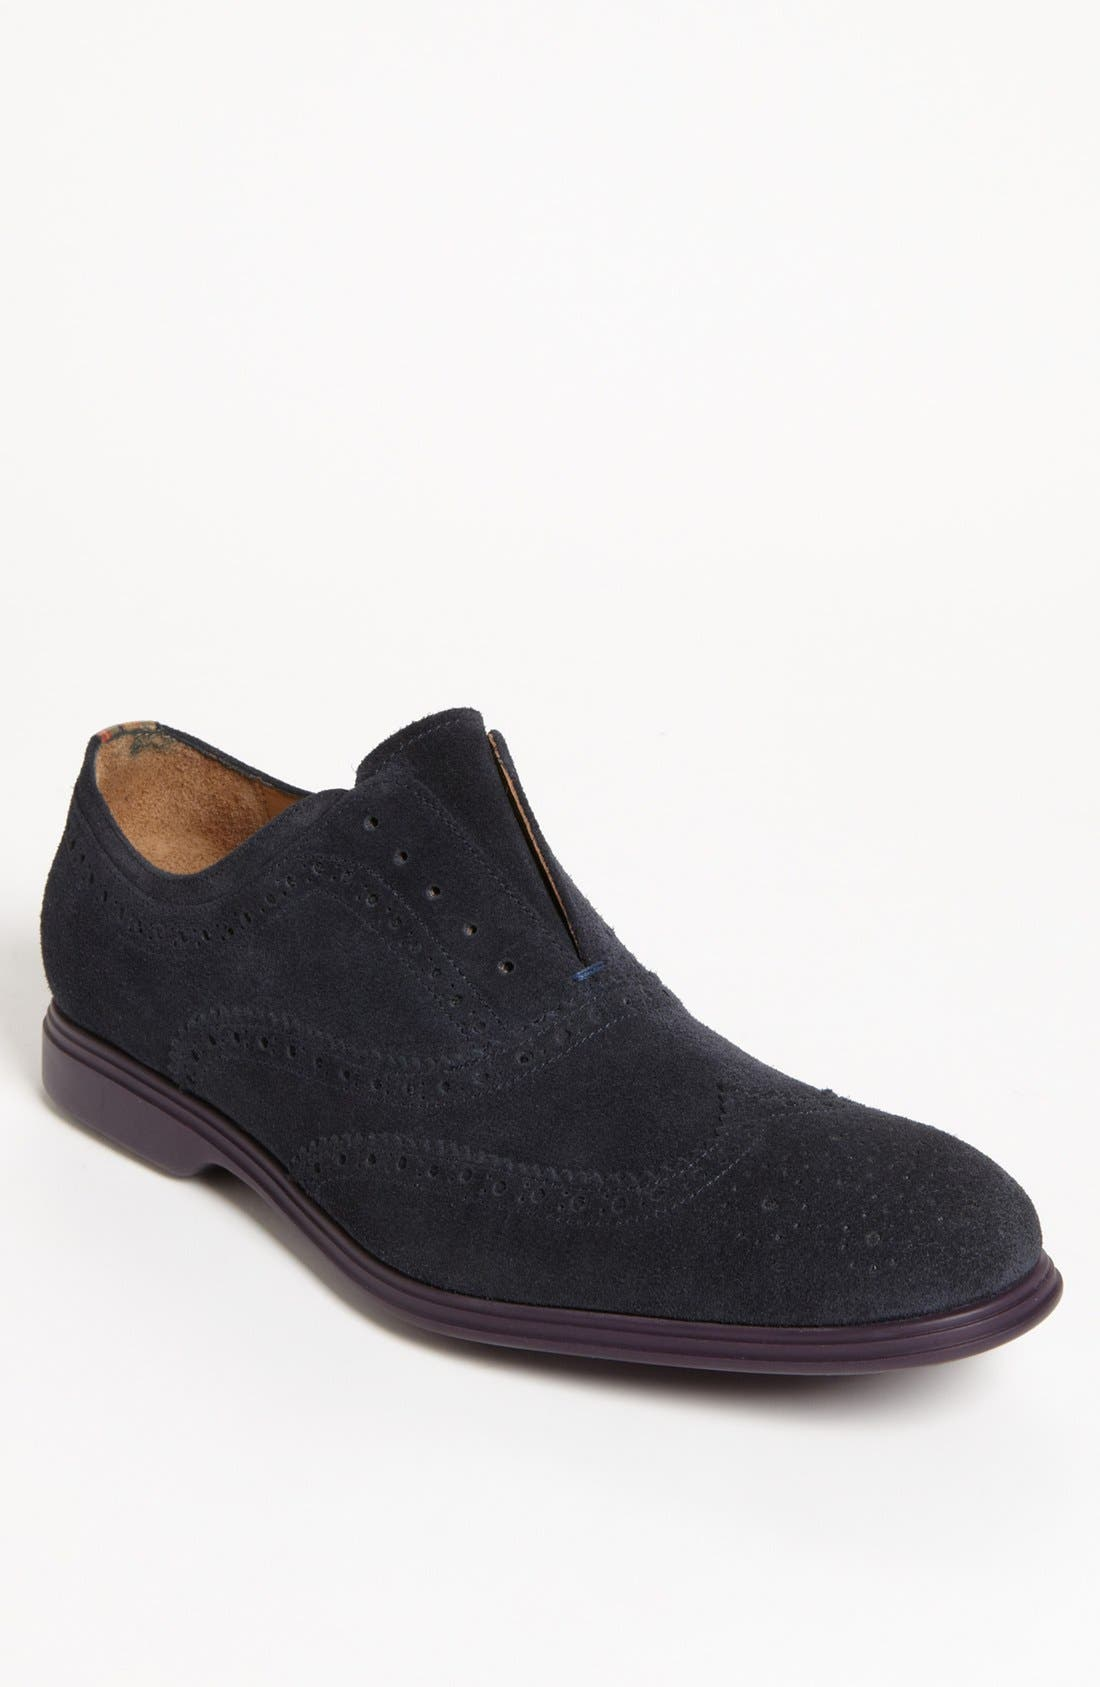 Alternate Image 1 Selected - Paul Smith 'Carson' Laceless Wingtip